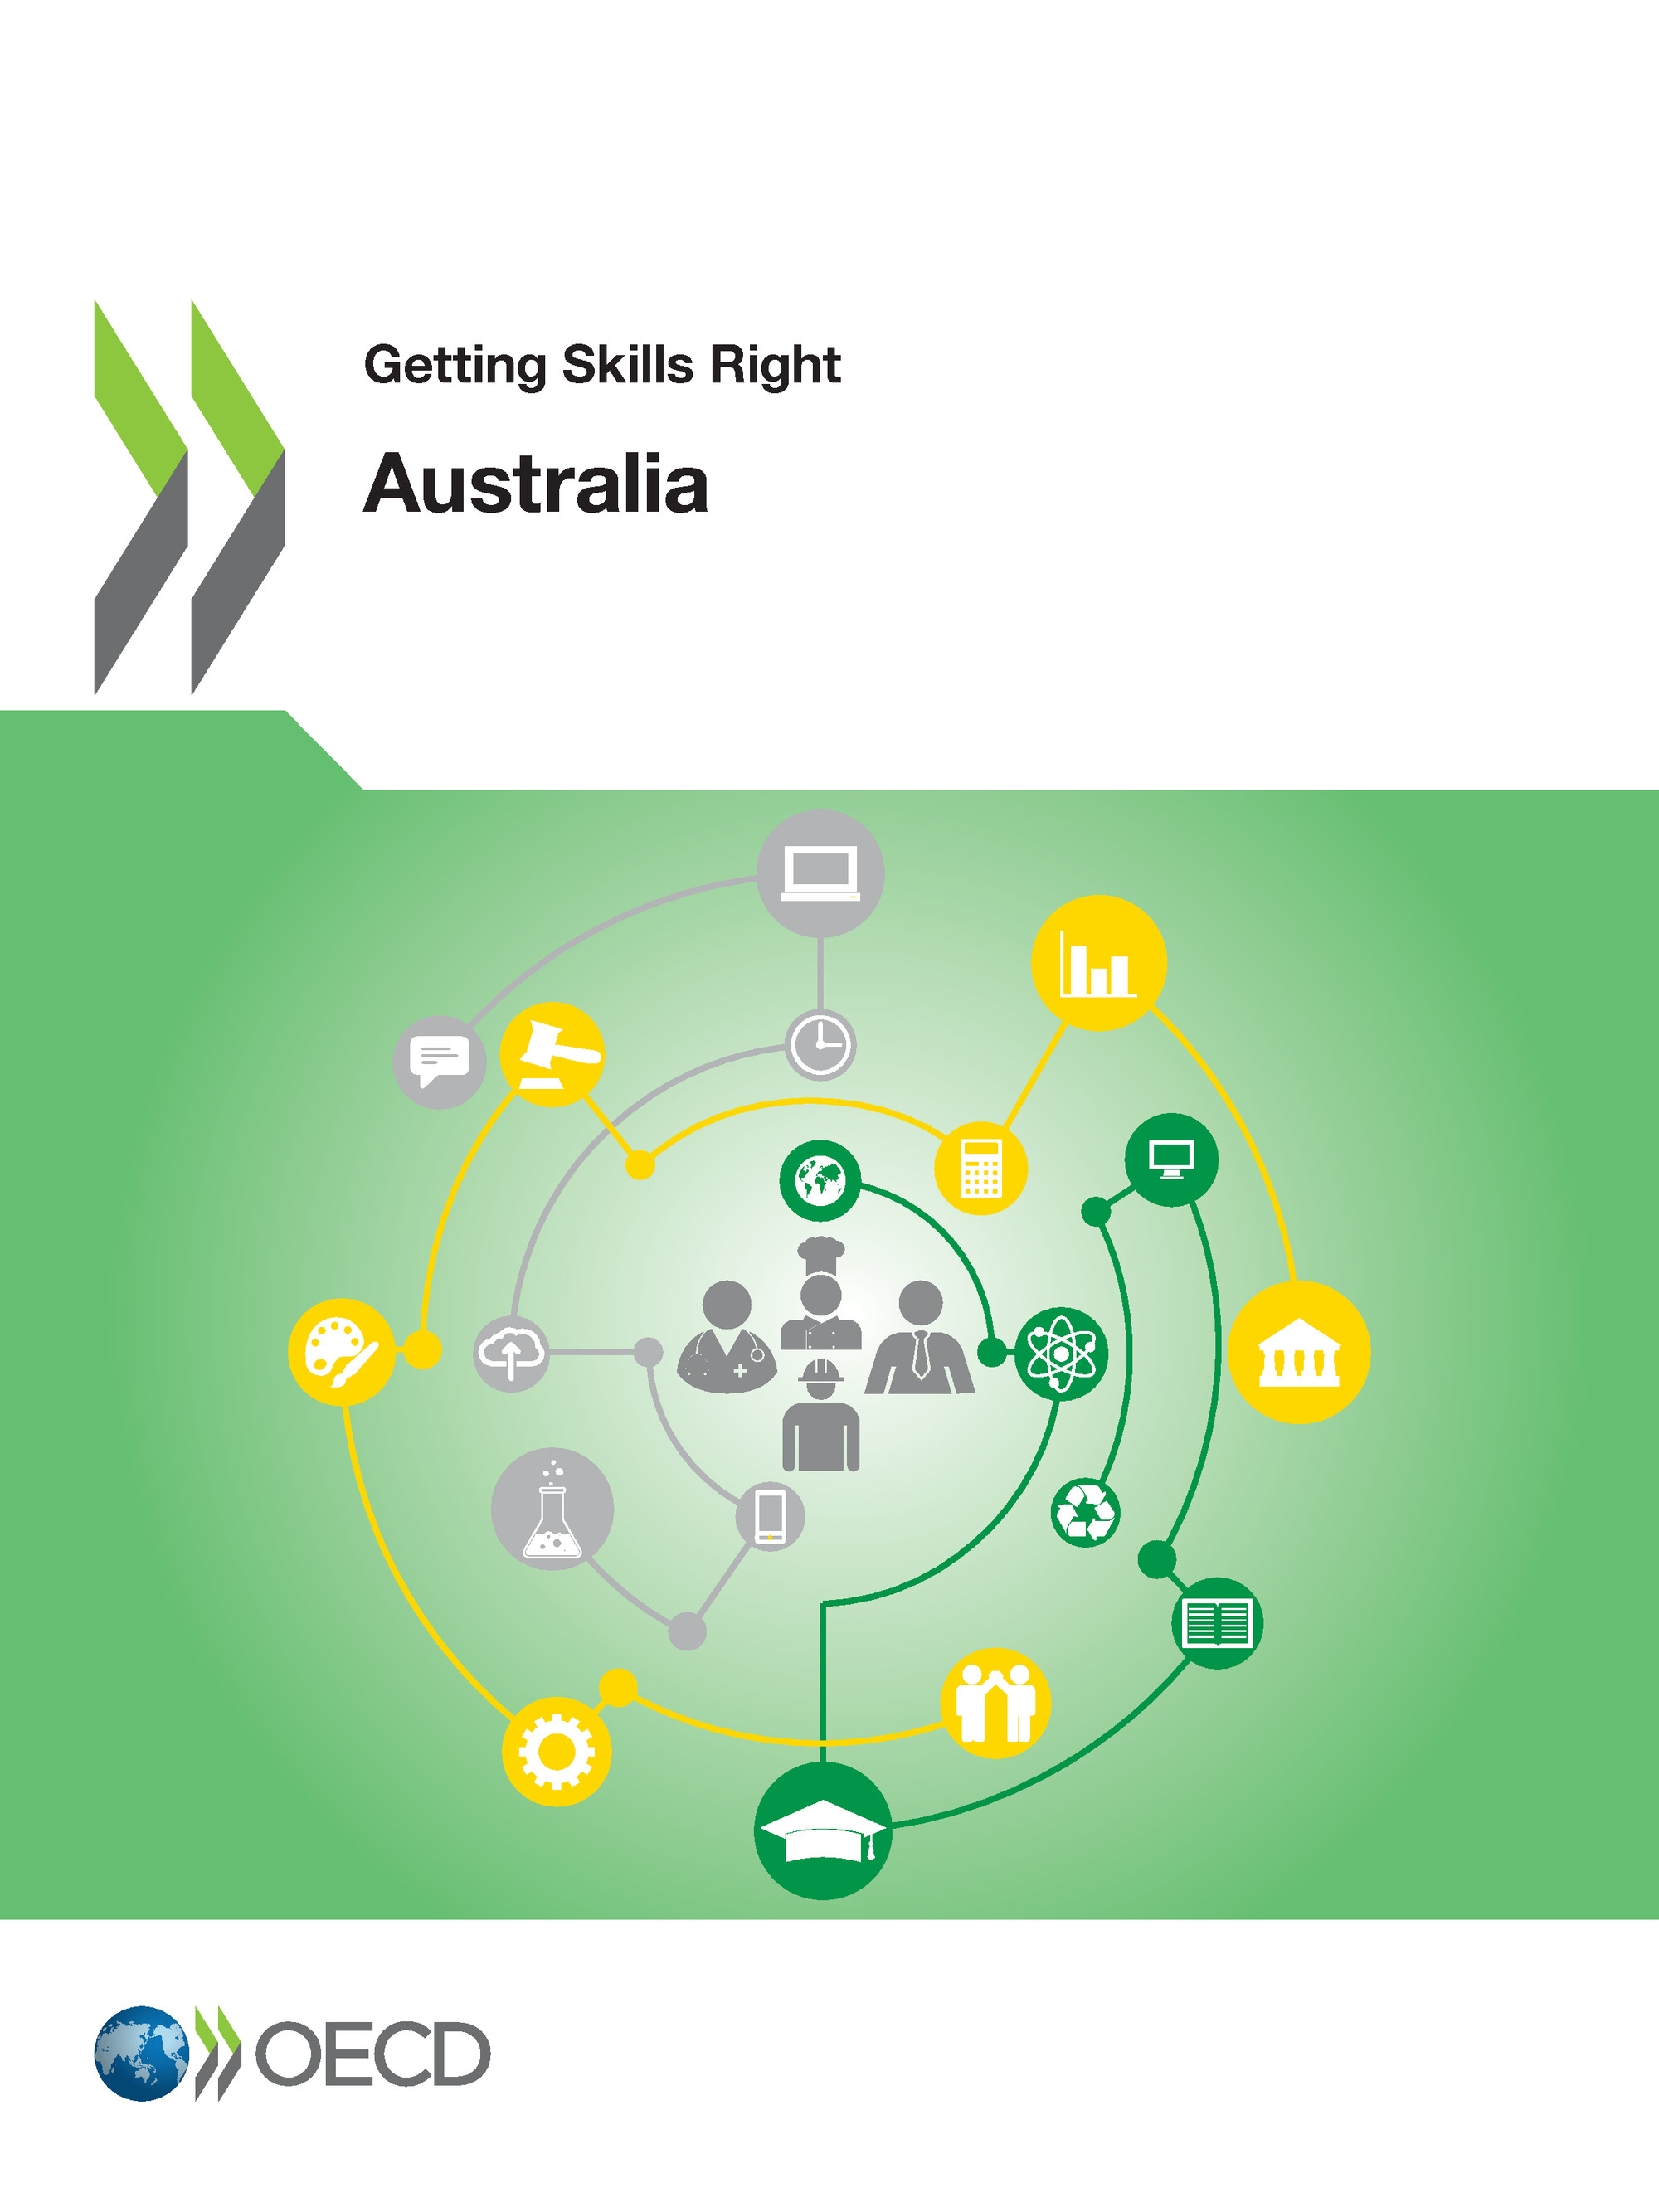 Getting Skills Right: Australia De  Collectif - OCDE / OECD